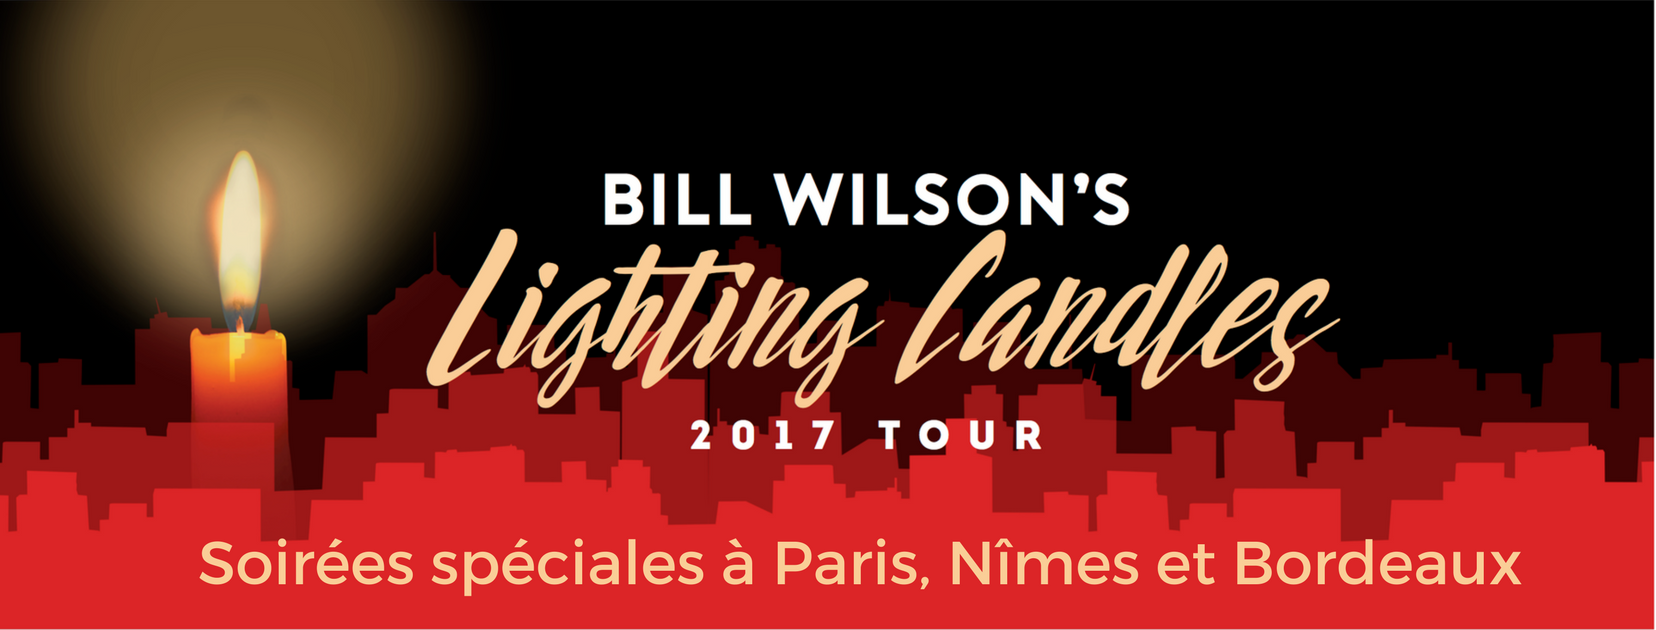 Bill Wilson tournée France 2017